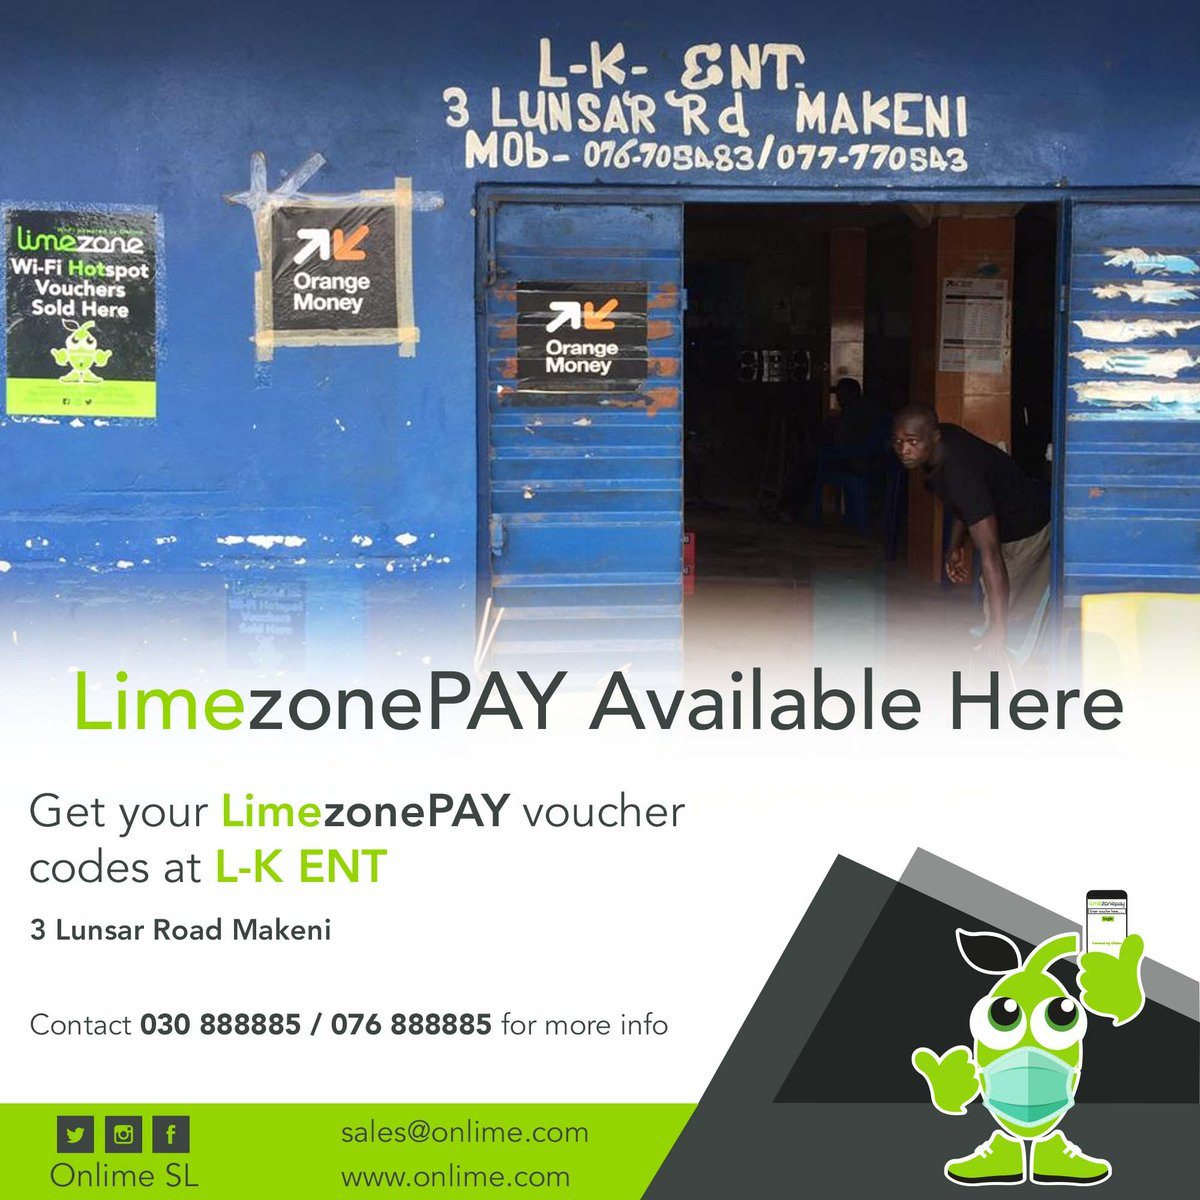 Get your LimezonePAY Voucher codes from L-K ENT, 3 Lunsar Road Makeni contact +23230888885 /+23276888885 for more info. #Staywell #StaySafe #LimezonePAY #SuperfastInternet #ABundleOfCheapData https://t.co/mPDxLxEQqt